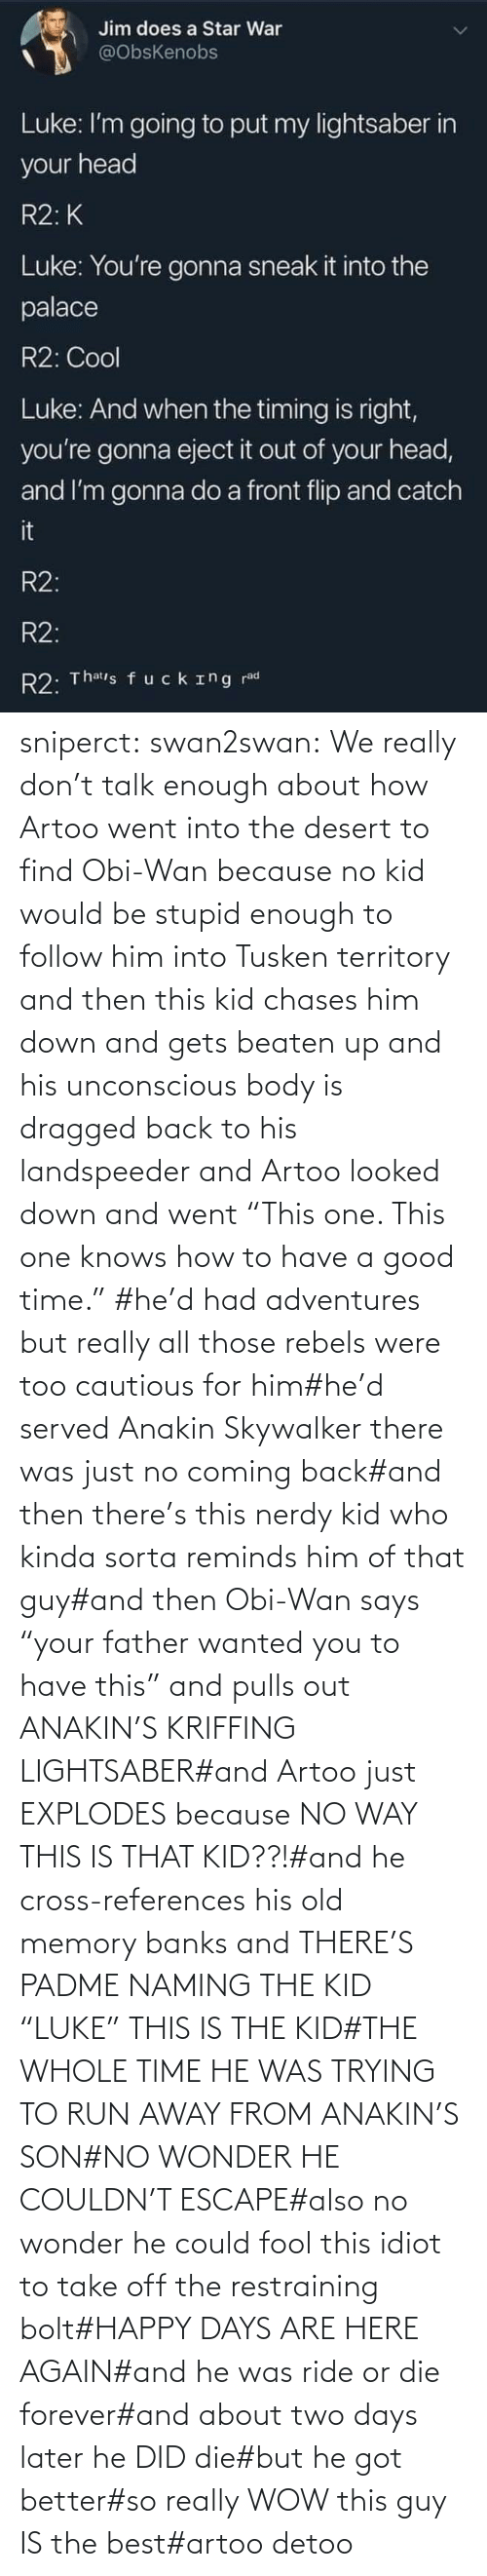 "this guy: sniperct:  swan2swan: We really don't talk enough about how Artoo went into the desert to find Obi-Wan because no kid would be stupid enough to follow him into Tusken territory and then this kid chases him down and gets beaten up and his unconscious body is dragged back to his landspeeder and Artoo looked down and went ""This one. This one knows how to have a good time.""  #he'd had adventures but really all those rebels were too cautious for him#he'd served Anakin Skywalker there was just no coming back#and then there's this nerdy kid who kinda sorta reminds him of that guy#and then Obi-Wan says ""your father wanted you to have this"" and pulls out ANAKIN'S KRIFFING LIGHTSABER#and Artoo just EXPLODES because NO WAY THIS IS THAT KID??!#and he cross-references his old memory banks and THERE'S PADME NAMING THE KID ""LUKE"" THIS IS THE KID#THE WHOLE TIME HE WAS TRYING TO RUN AWAY FROM ANAKIN'S SON#NO WONDER HE COULDN'T ESCAPE#also no wonder he could fool this idiot to take off the restraining bolt#HAPPY DAYS ARE HERE AGAIN#and he was ride or die forever#and about two days later he DID die#but he got better#so really WOW this guy IS the best#artoo detoo"